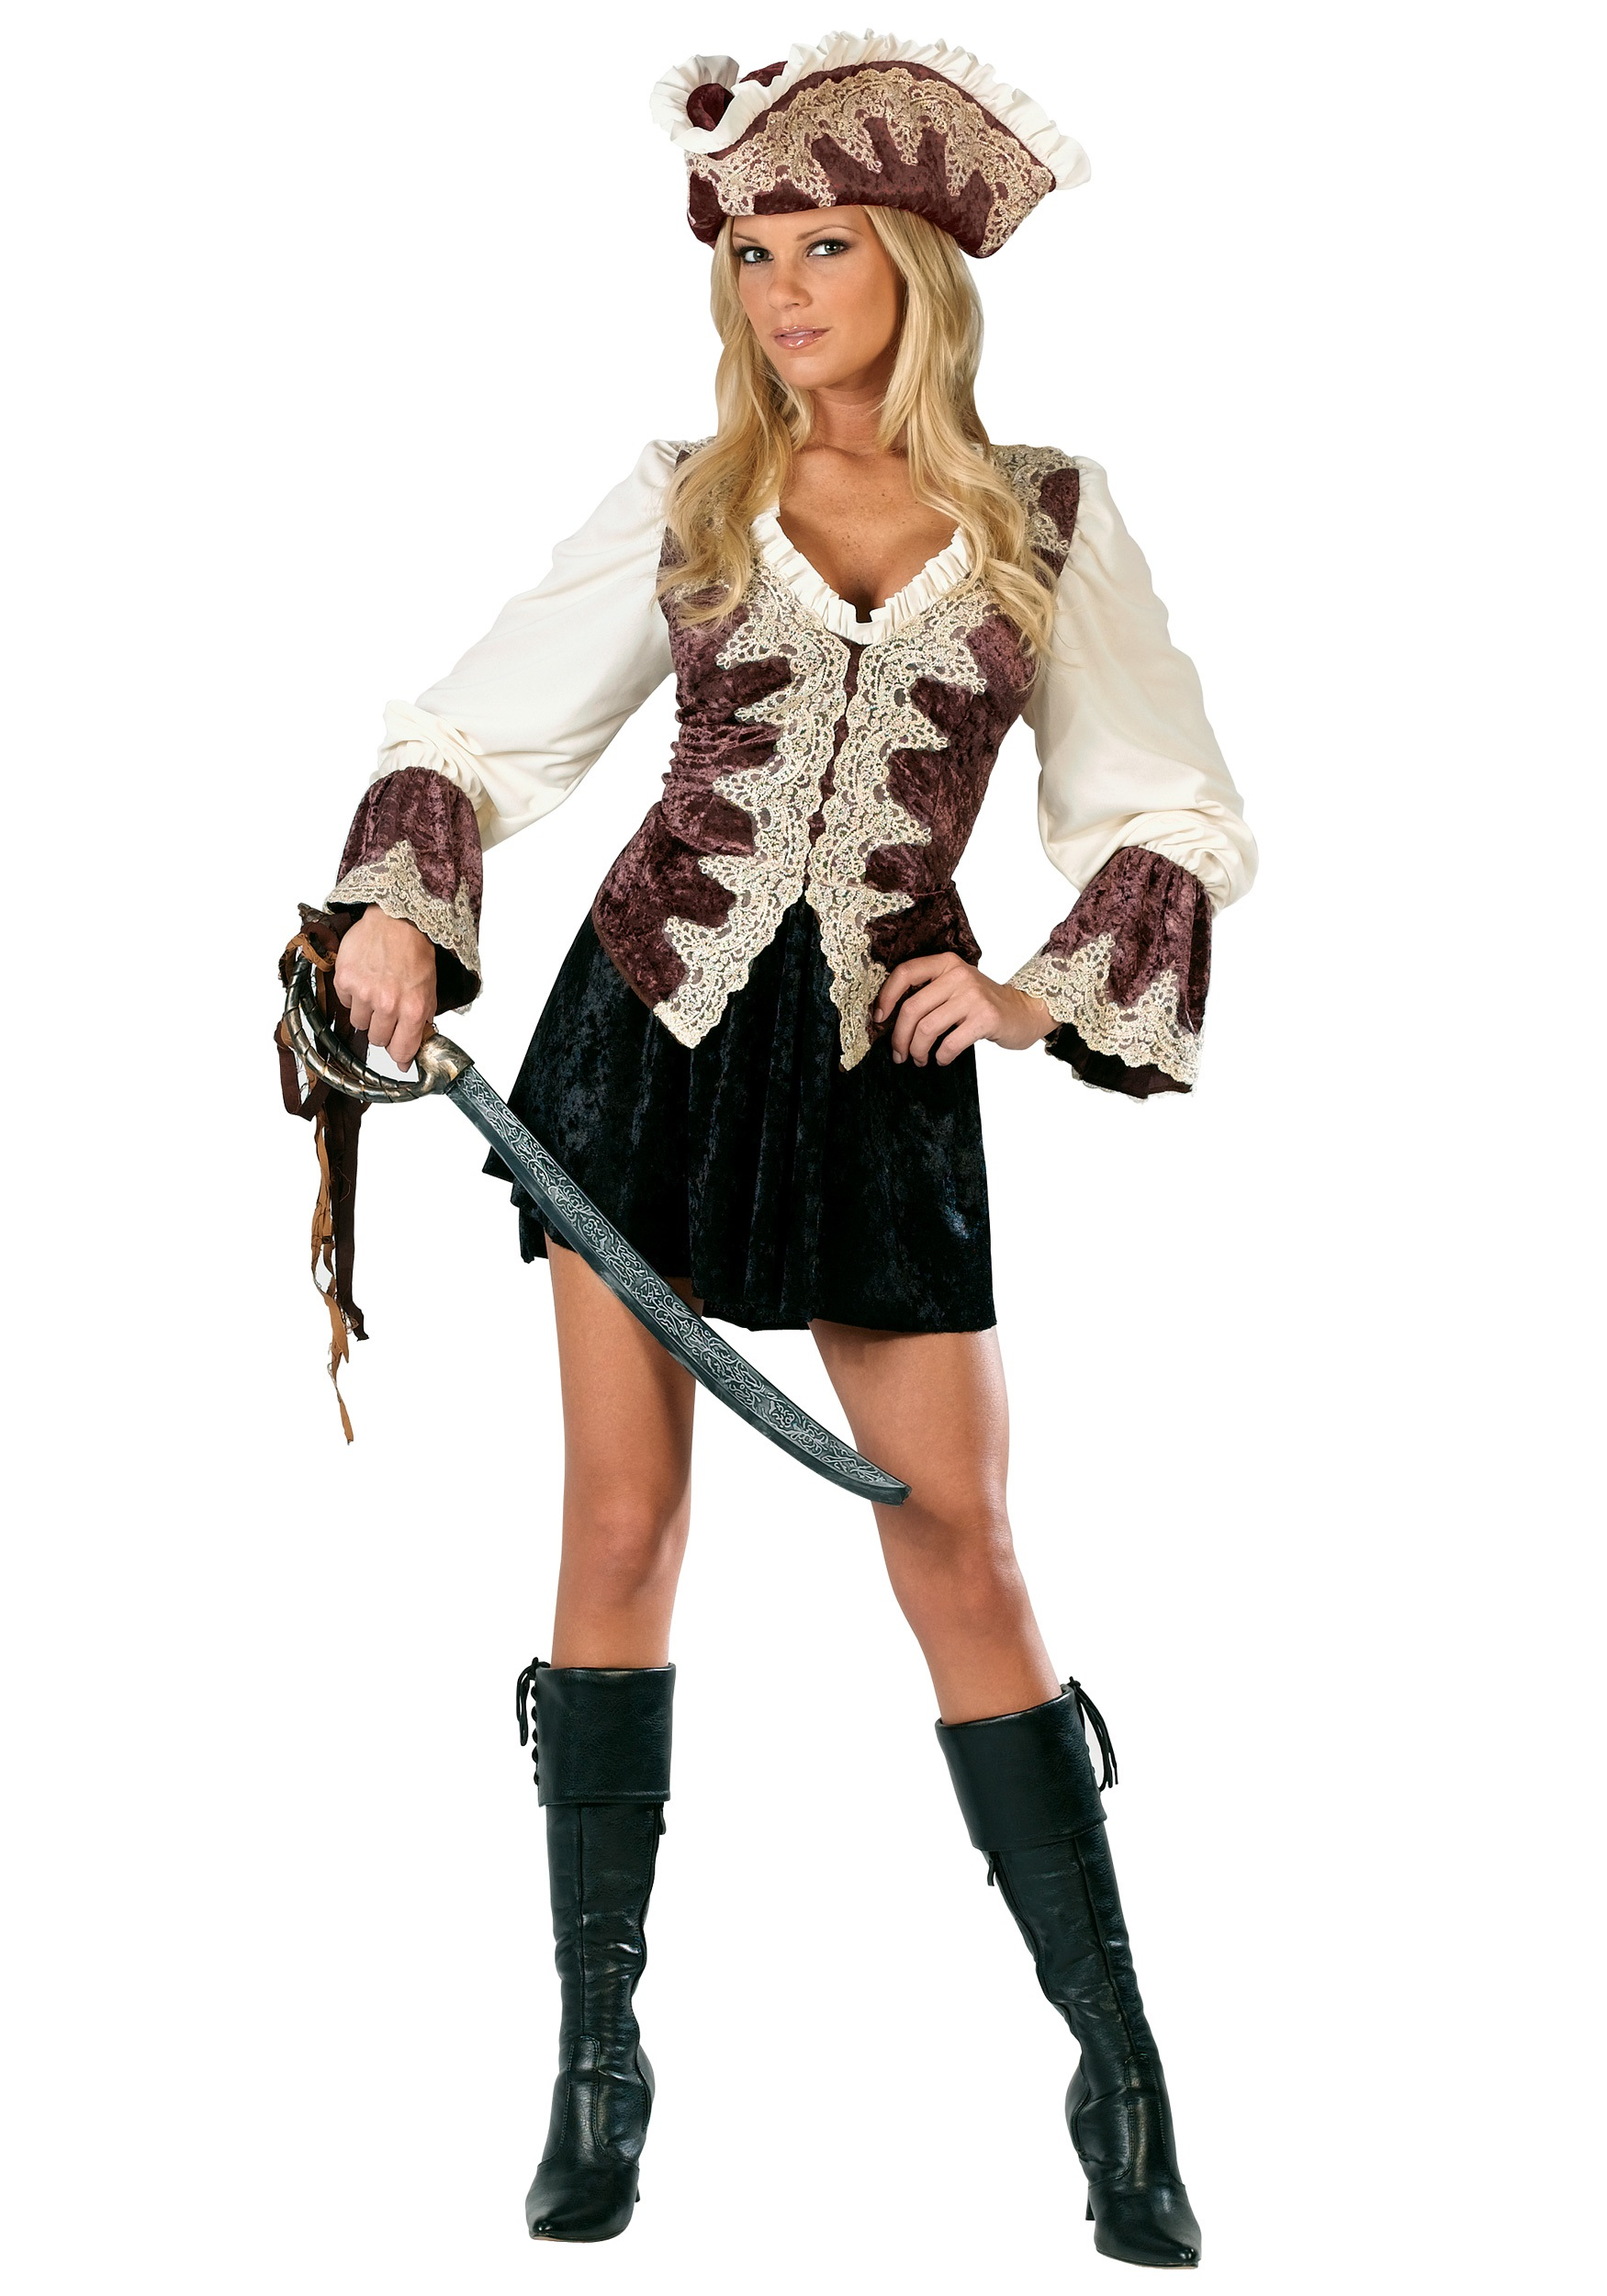 Ladies Royal Pirate Costume  sc 1 st  Halloween Costumes & Pirate Costumes for Women - Female Pirate Halloween Costume